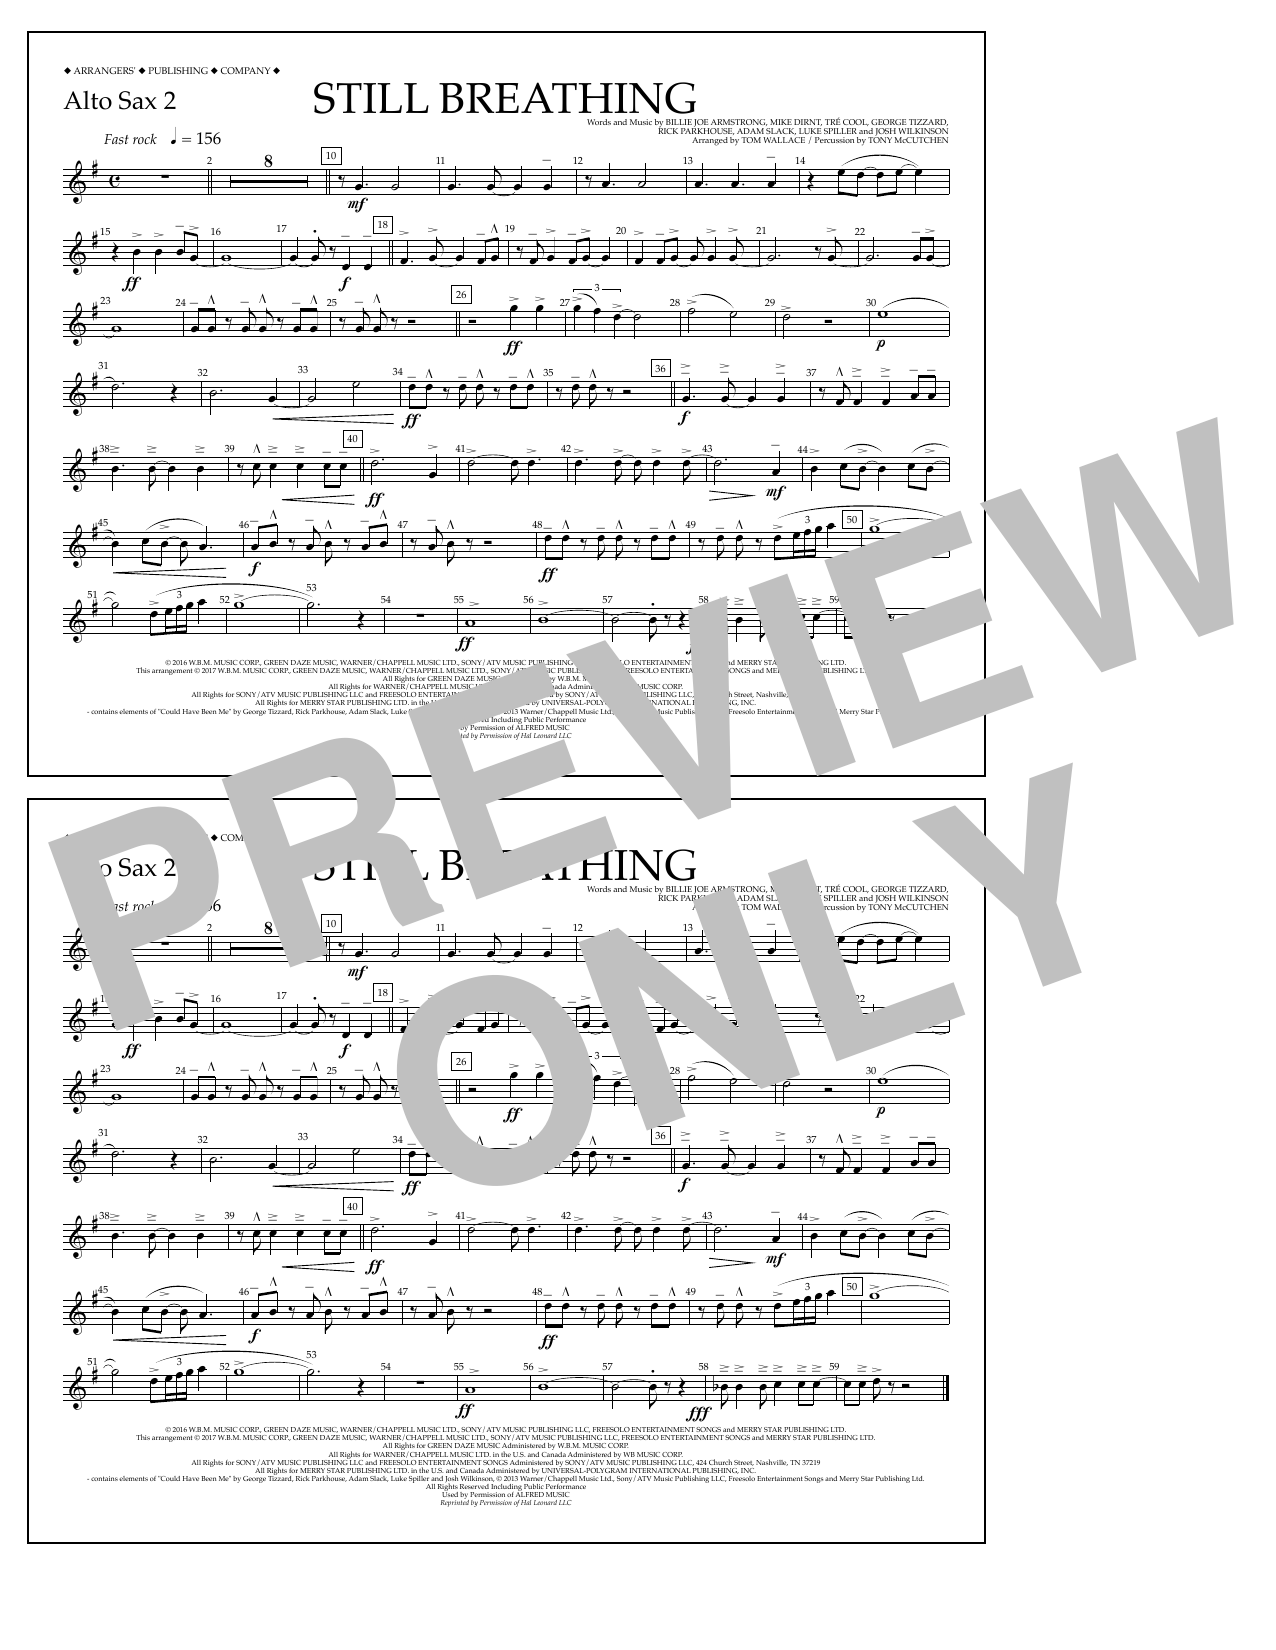 Still Breathing - Alto Sax 2 Sheet Music